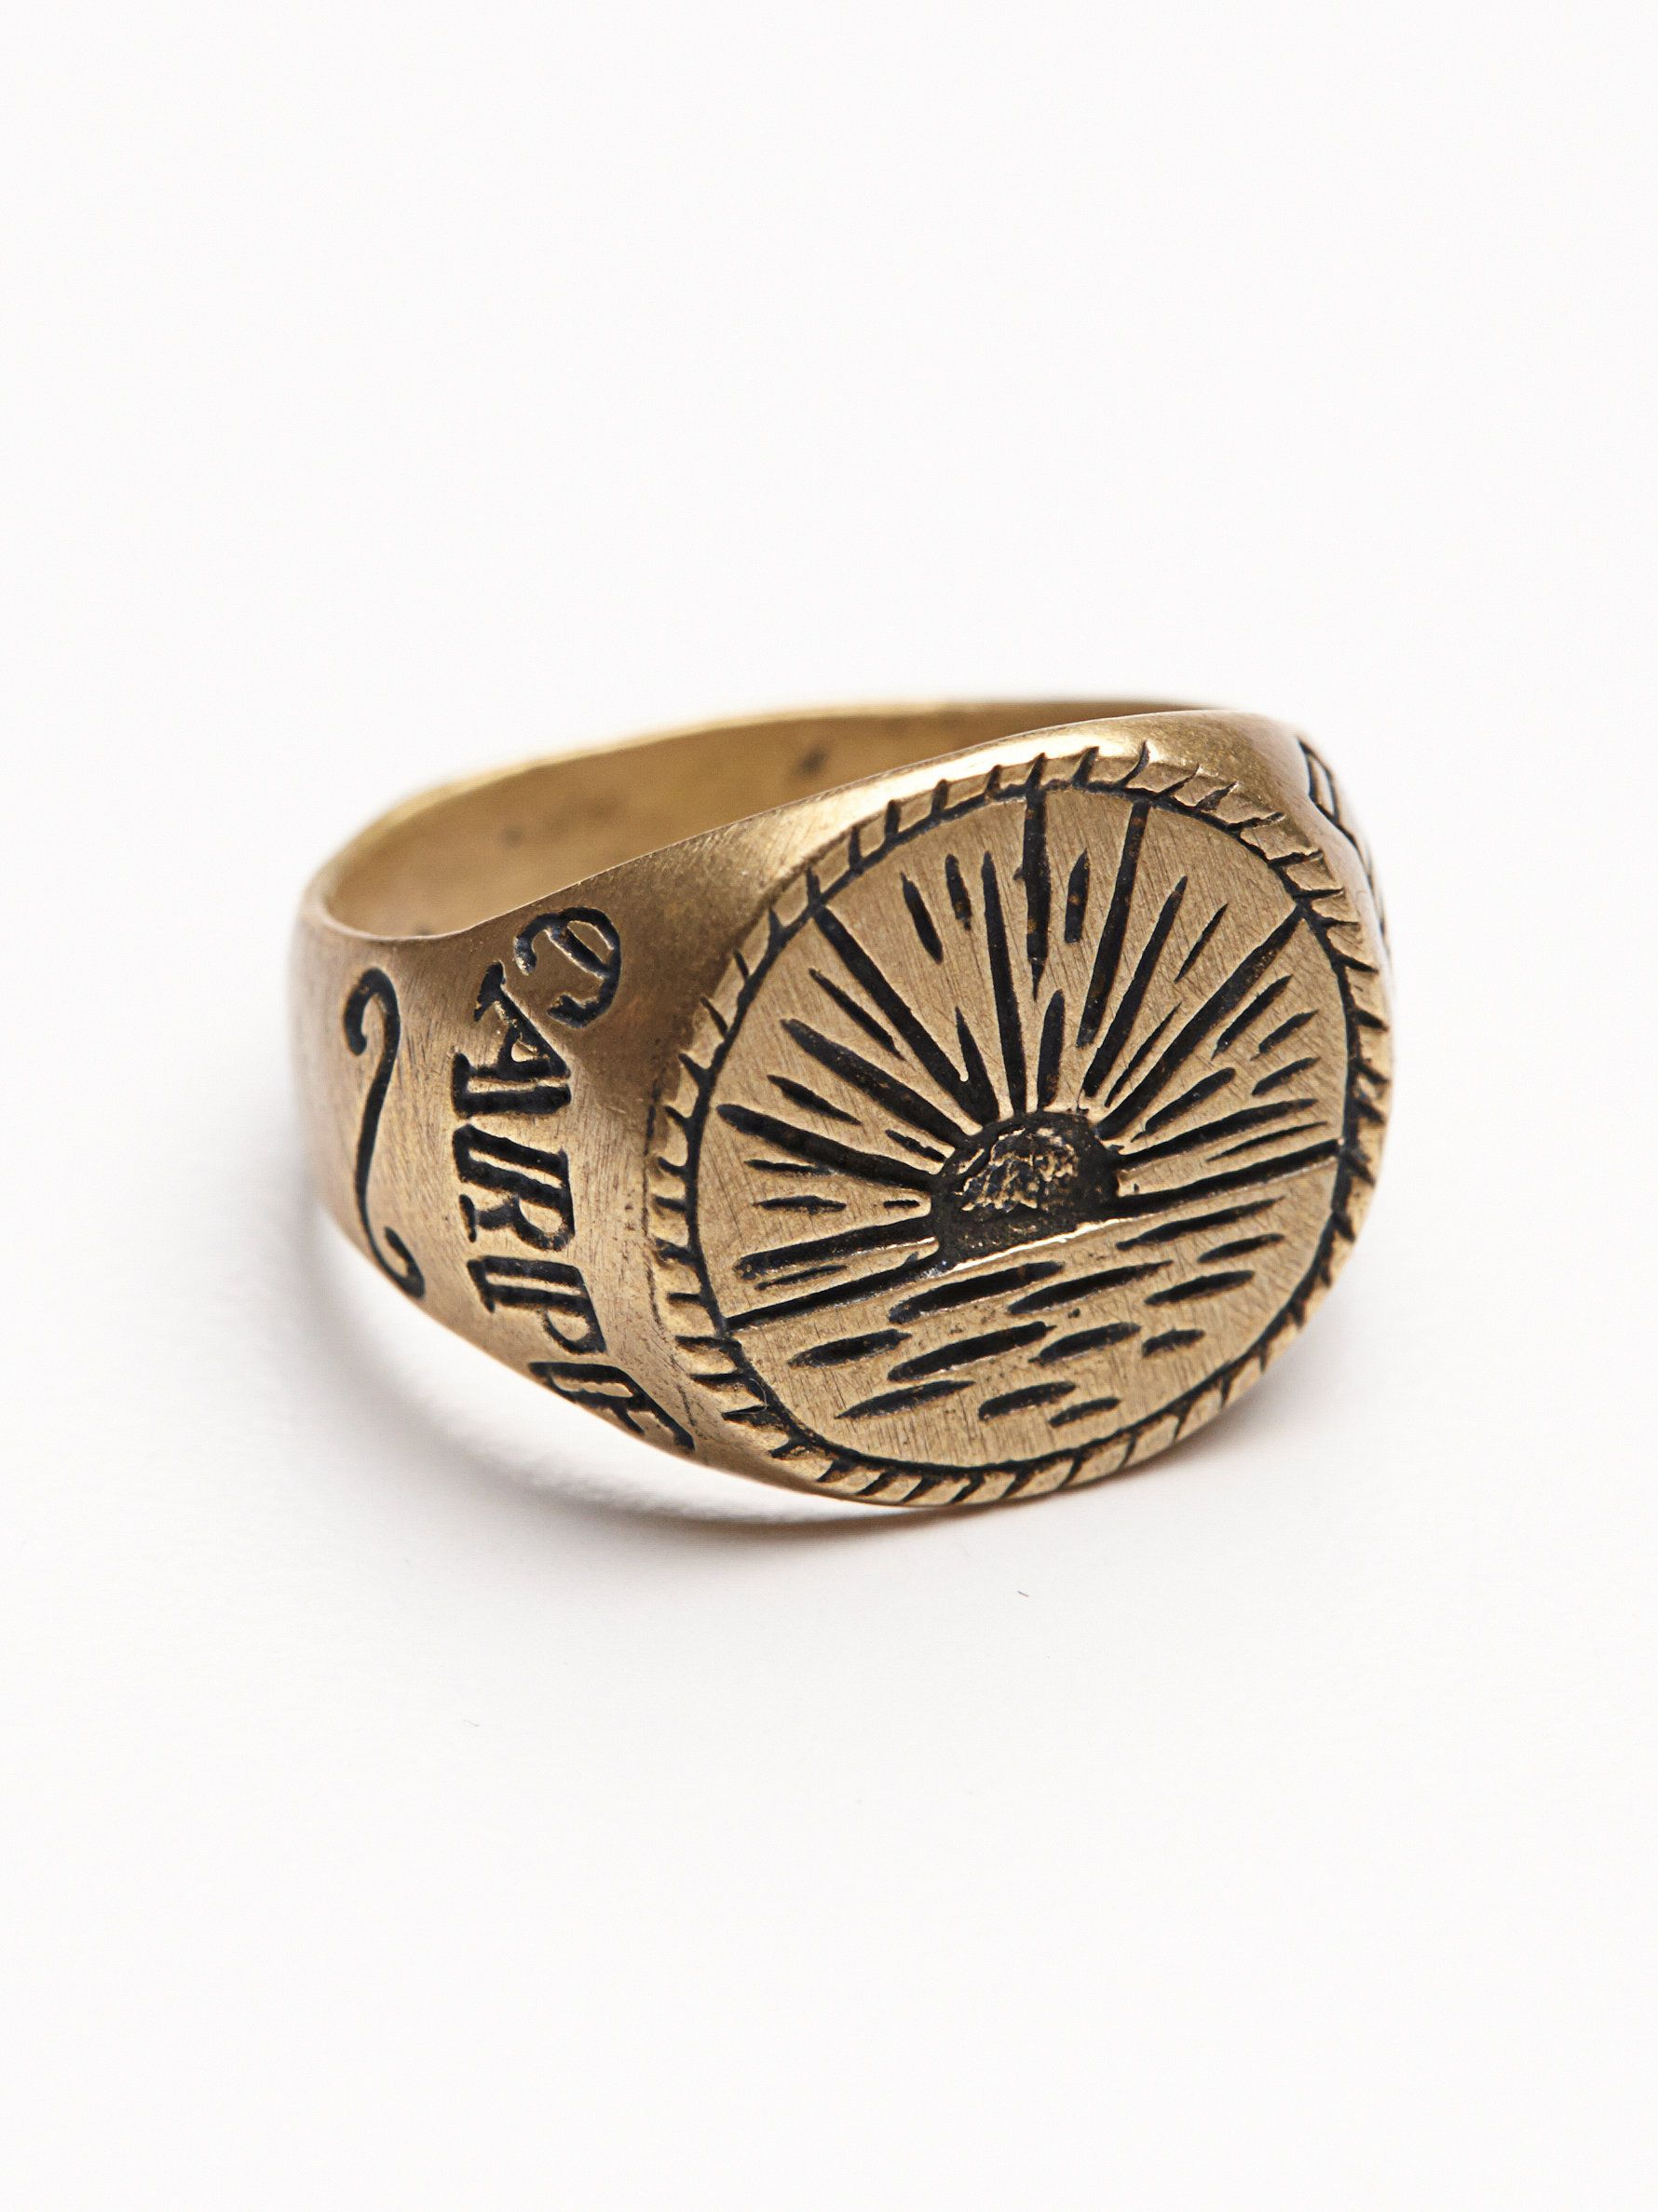 Sunrise Signet Ring | American made brass ring with hand-etched sunrise design.